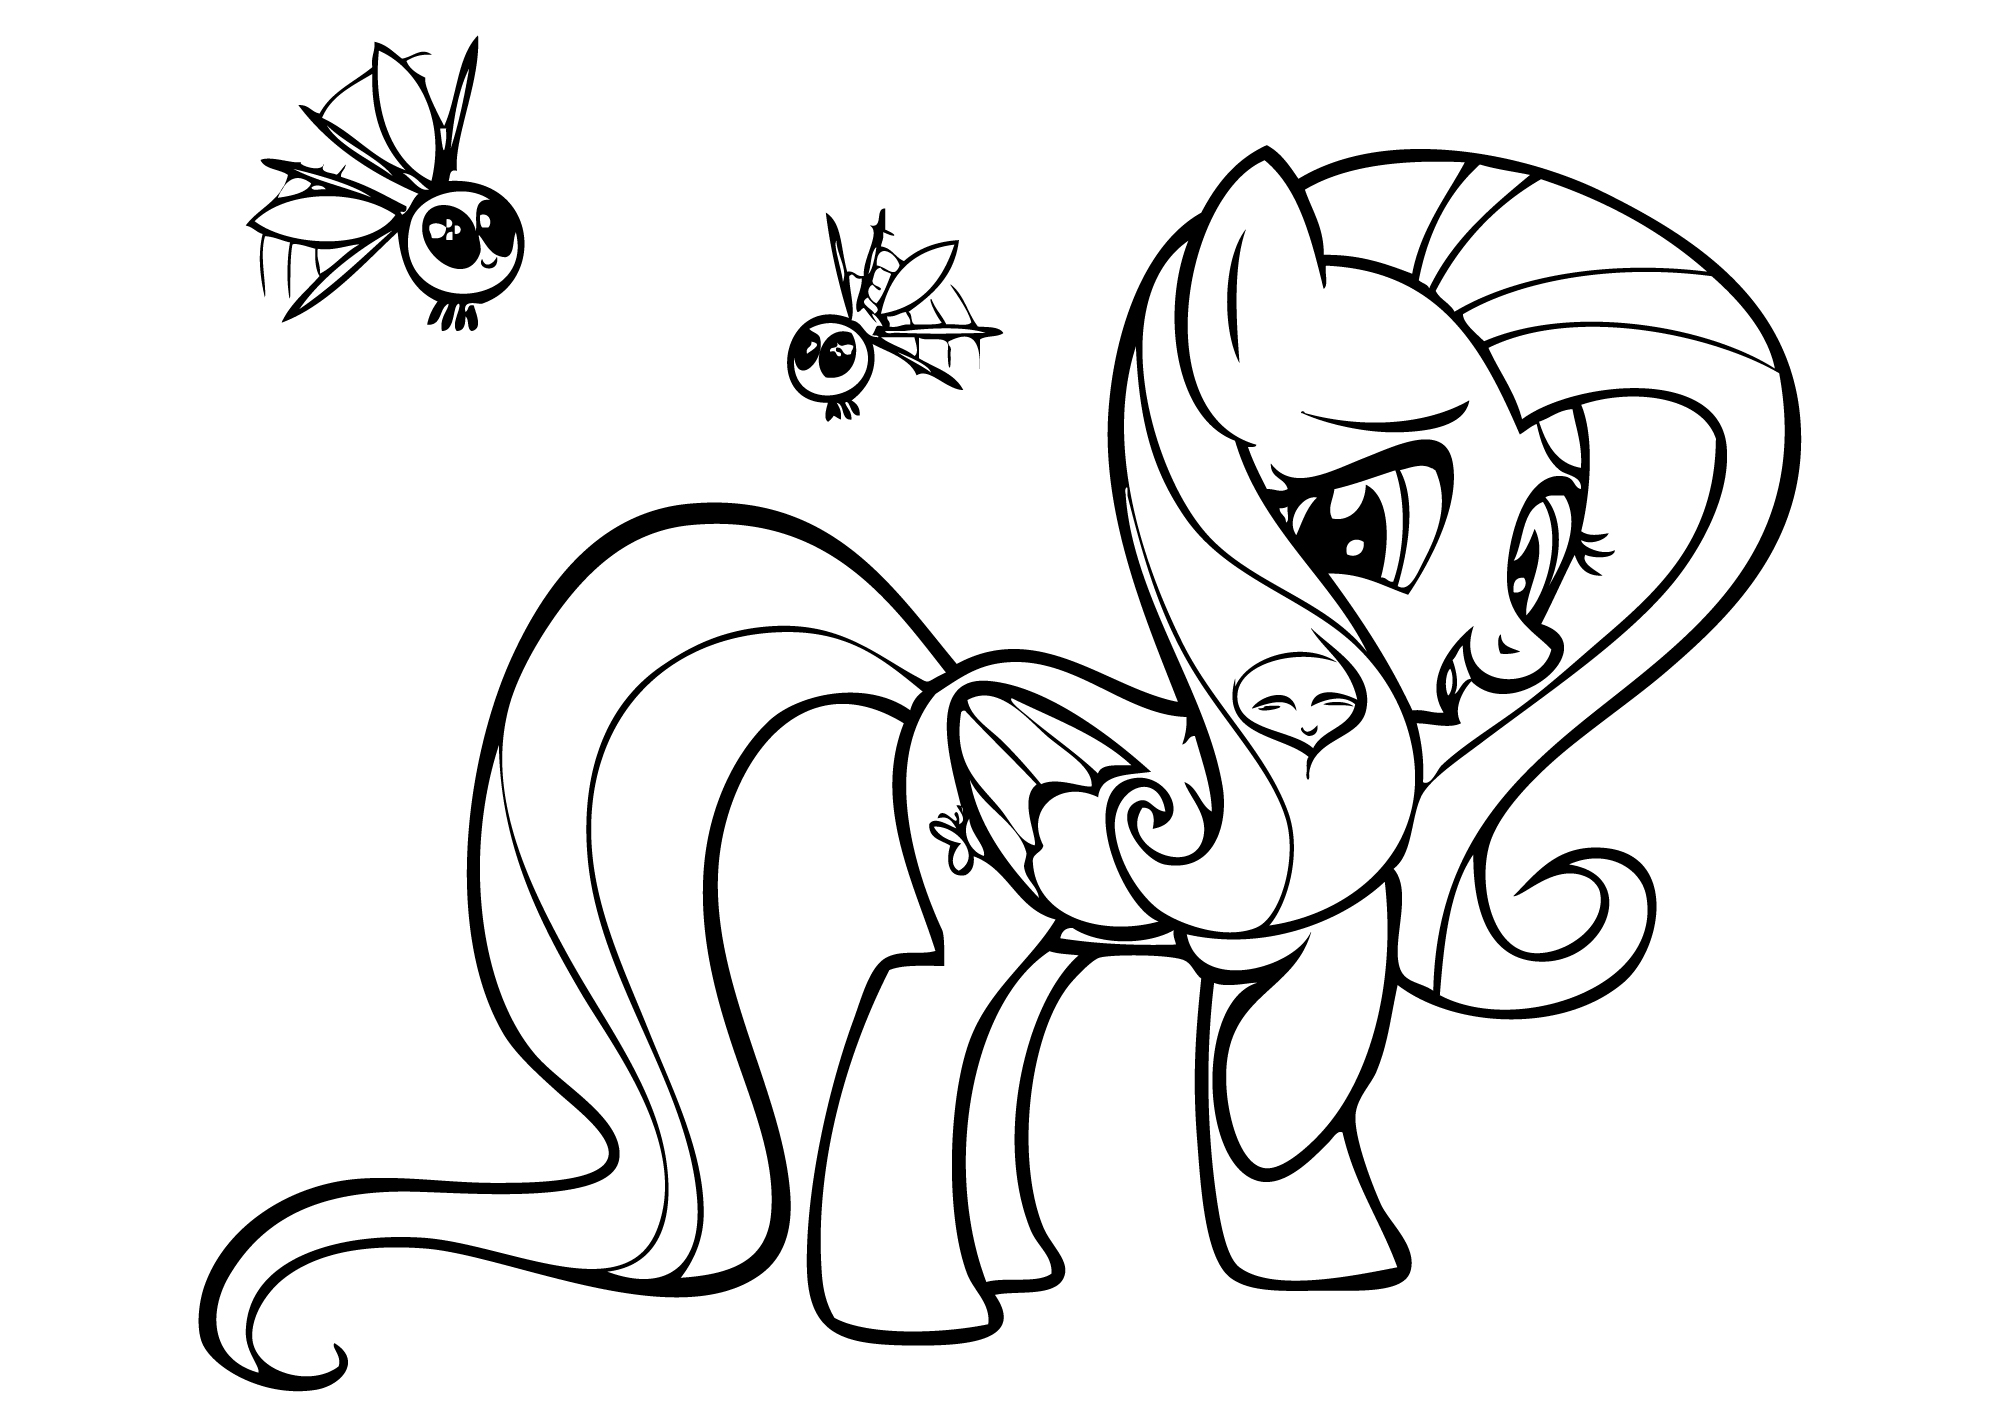 Drawn my little pony fluttershy coloring Coloring On Book Printable little